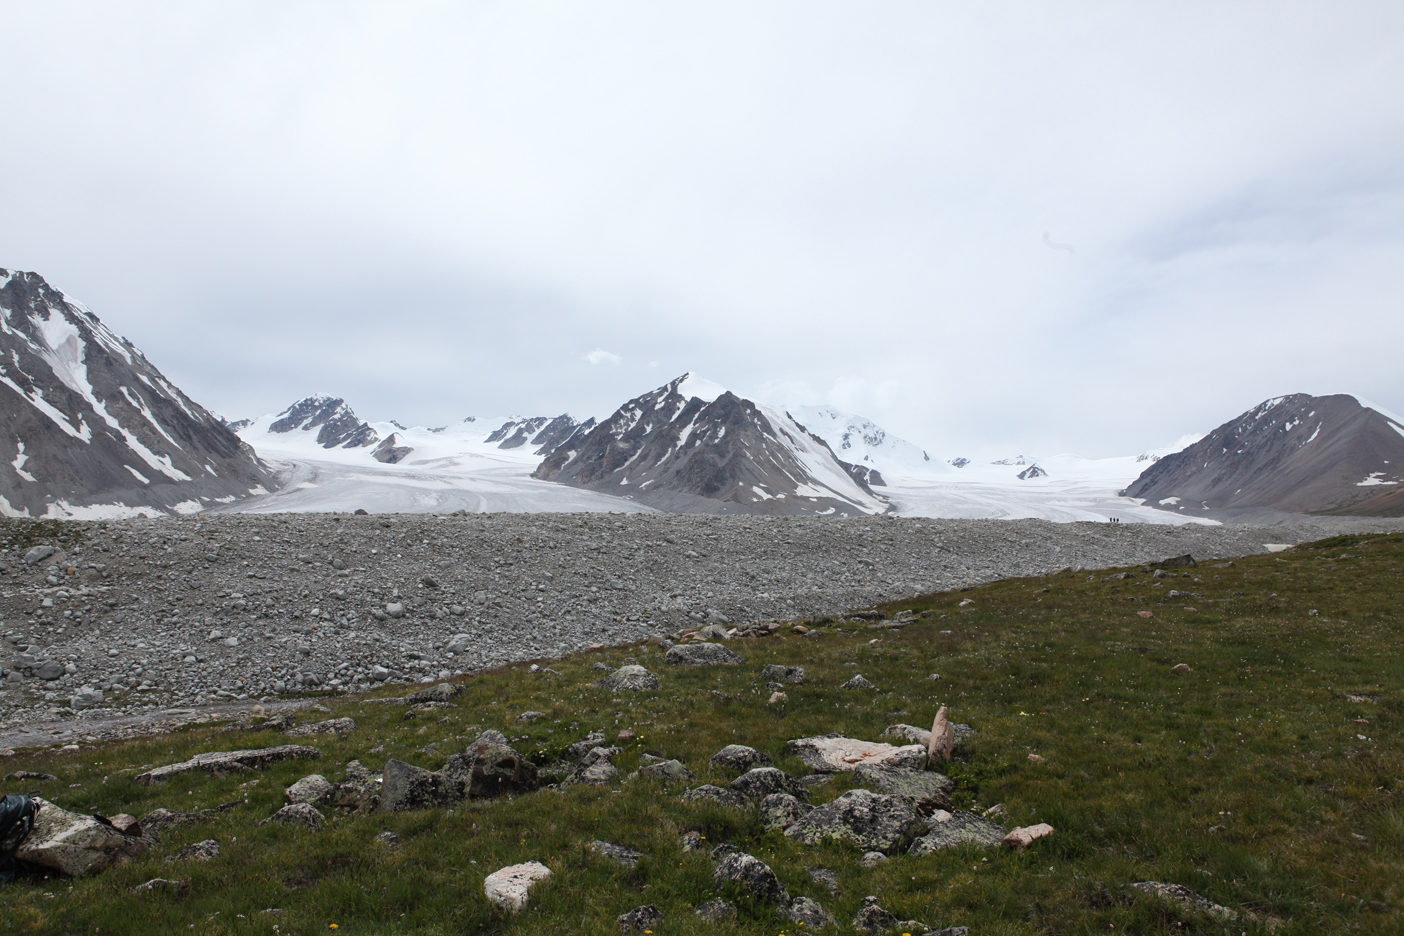 Alexander Glacier (left) and Potaniin Glacier (right); large white mountain right of center is Khüiten Peak, highest point in Mongolia at 14,350 ft. (note the 3 people in the photo for a sense of scale)